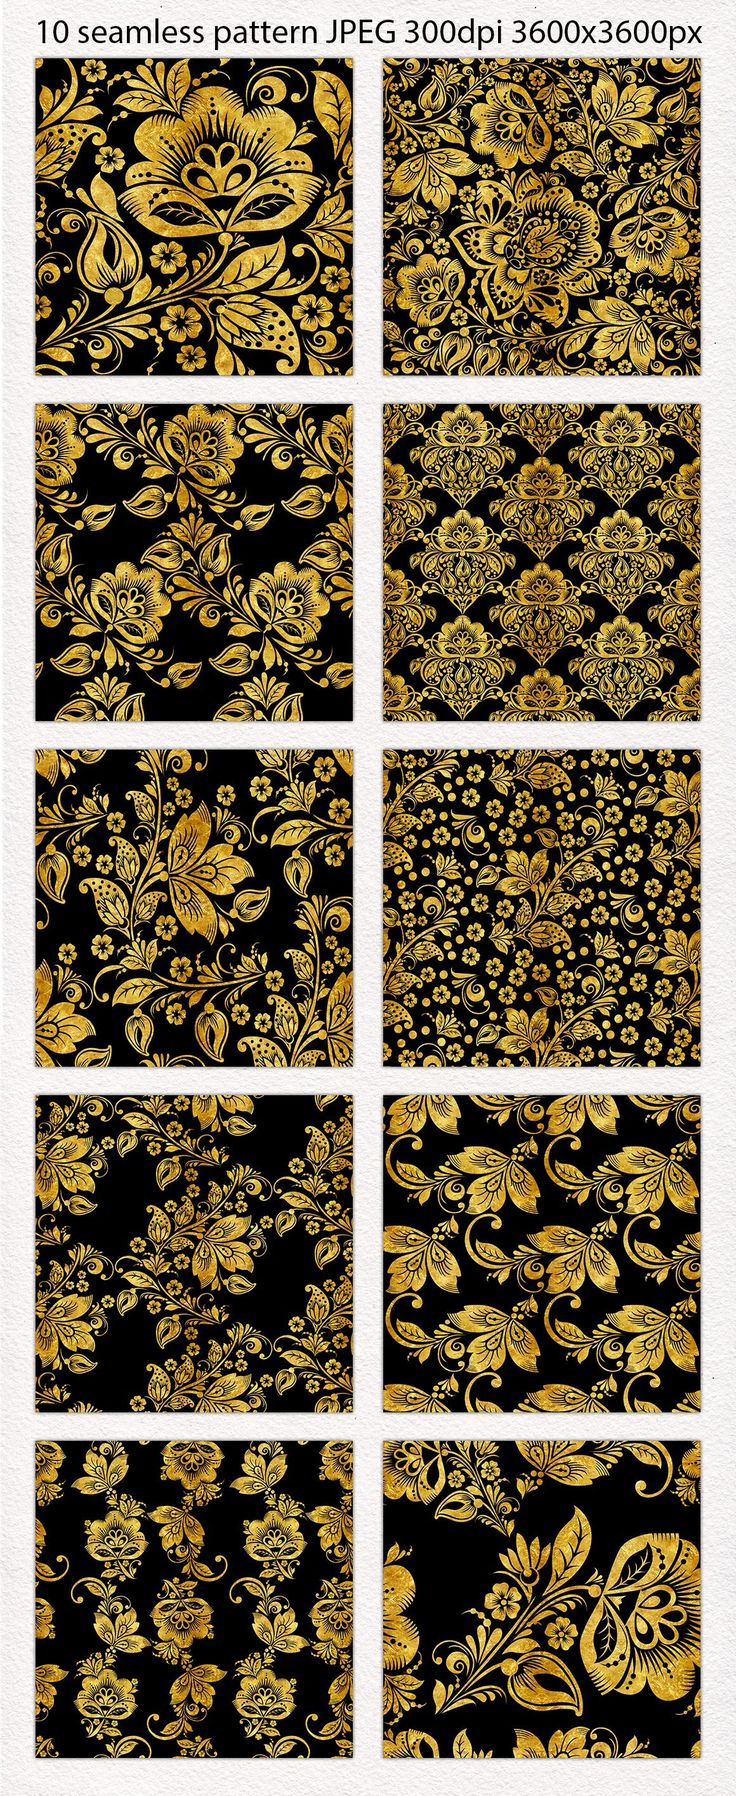 This gold floral set of seamless pattern based on the vintage Russian ornament. Khokhloma.  This gold pack seamless pattern that make lovely paper stationery (posters, business cards, postcards, notebooks, invitation) or home decor (pillows, bedclothes, towels, napkins), for weddings, apparel, merchandise designs, scrapbooking, fashion and so much more.